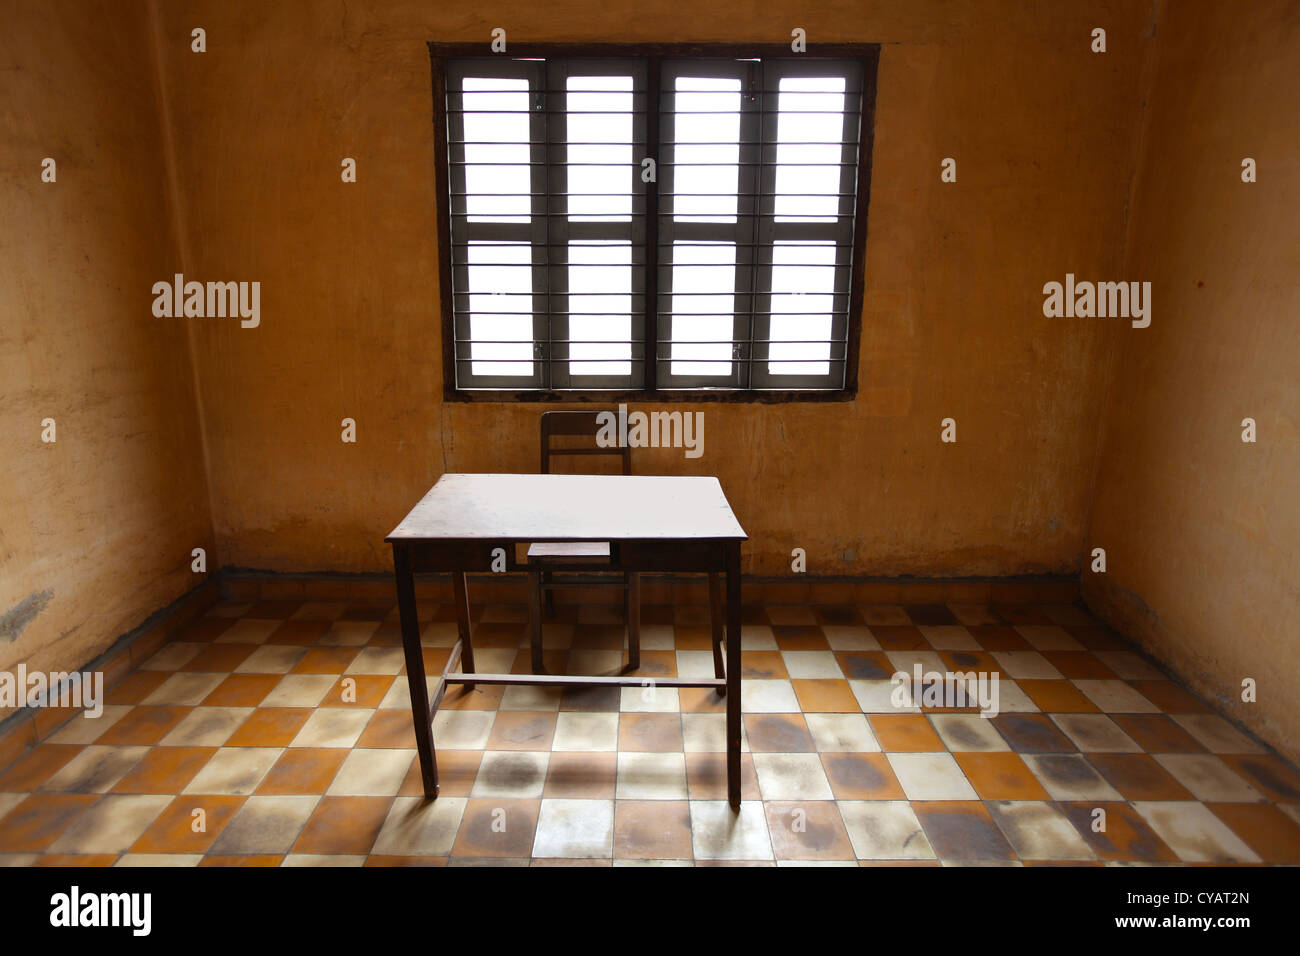 Room with a table, ascetic and old with tiles, prison room - Stock Image